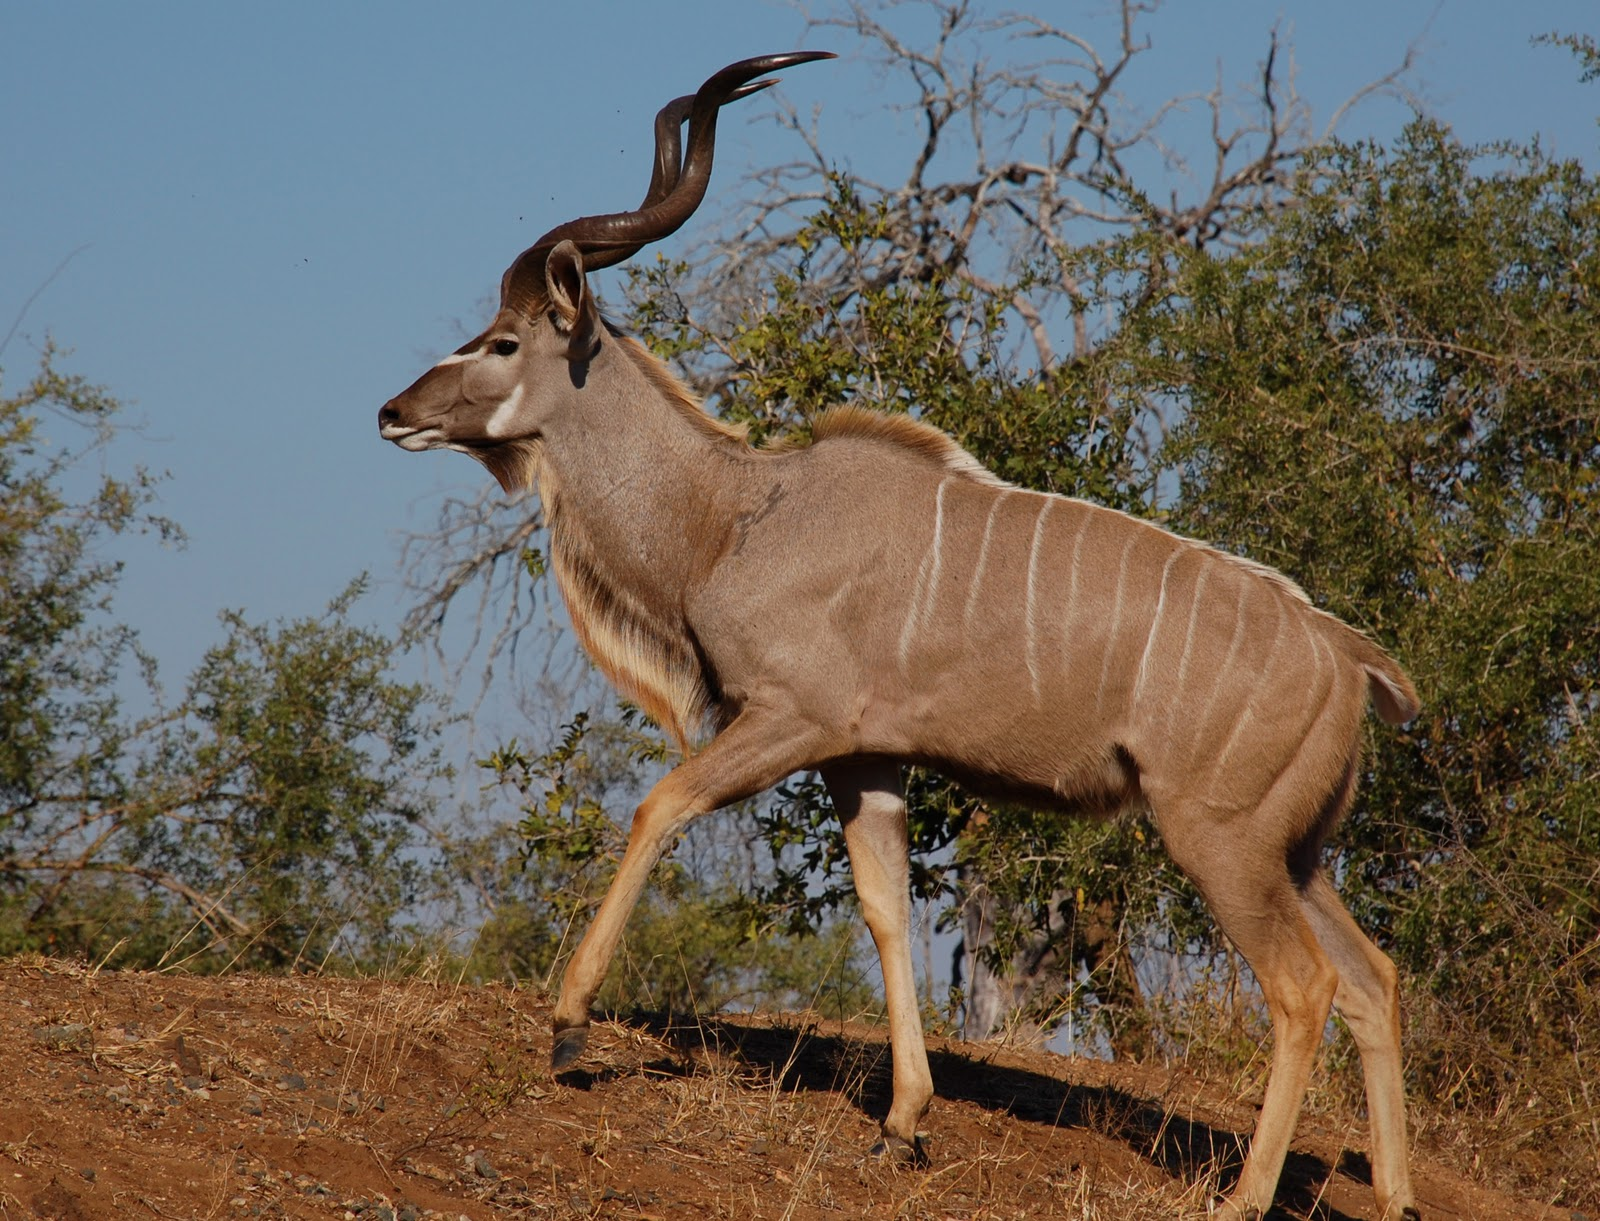 ENCYCLOPEDIA OF ANIMAL FACTS AND PICTURES: KUDU